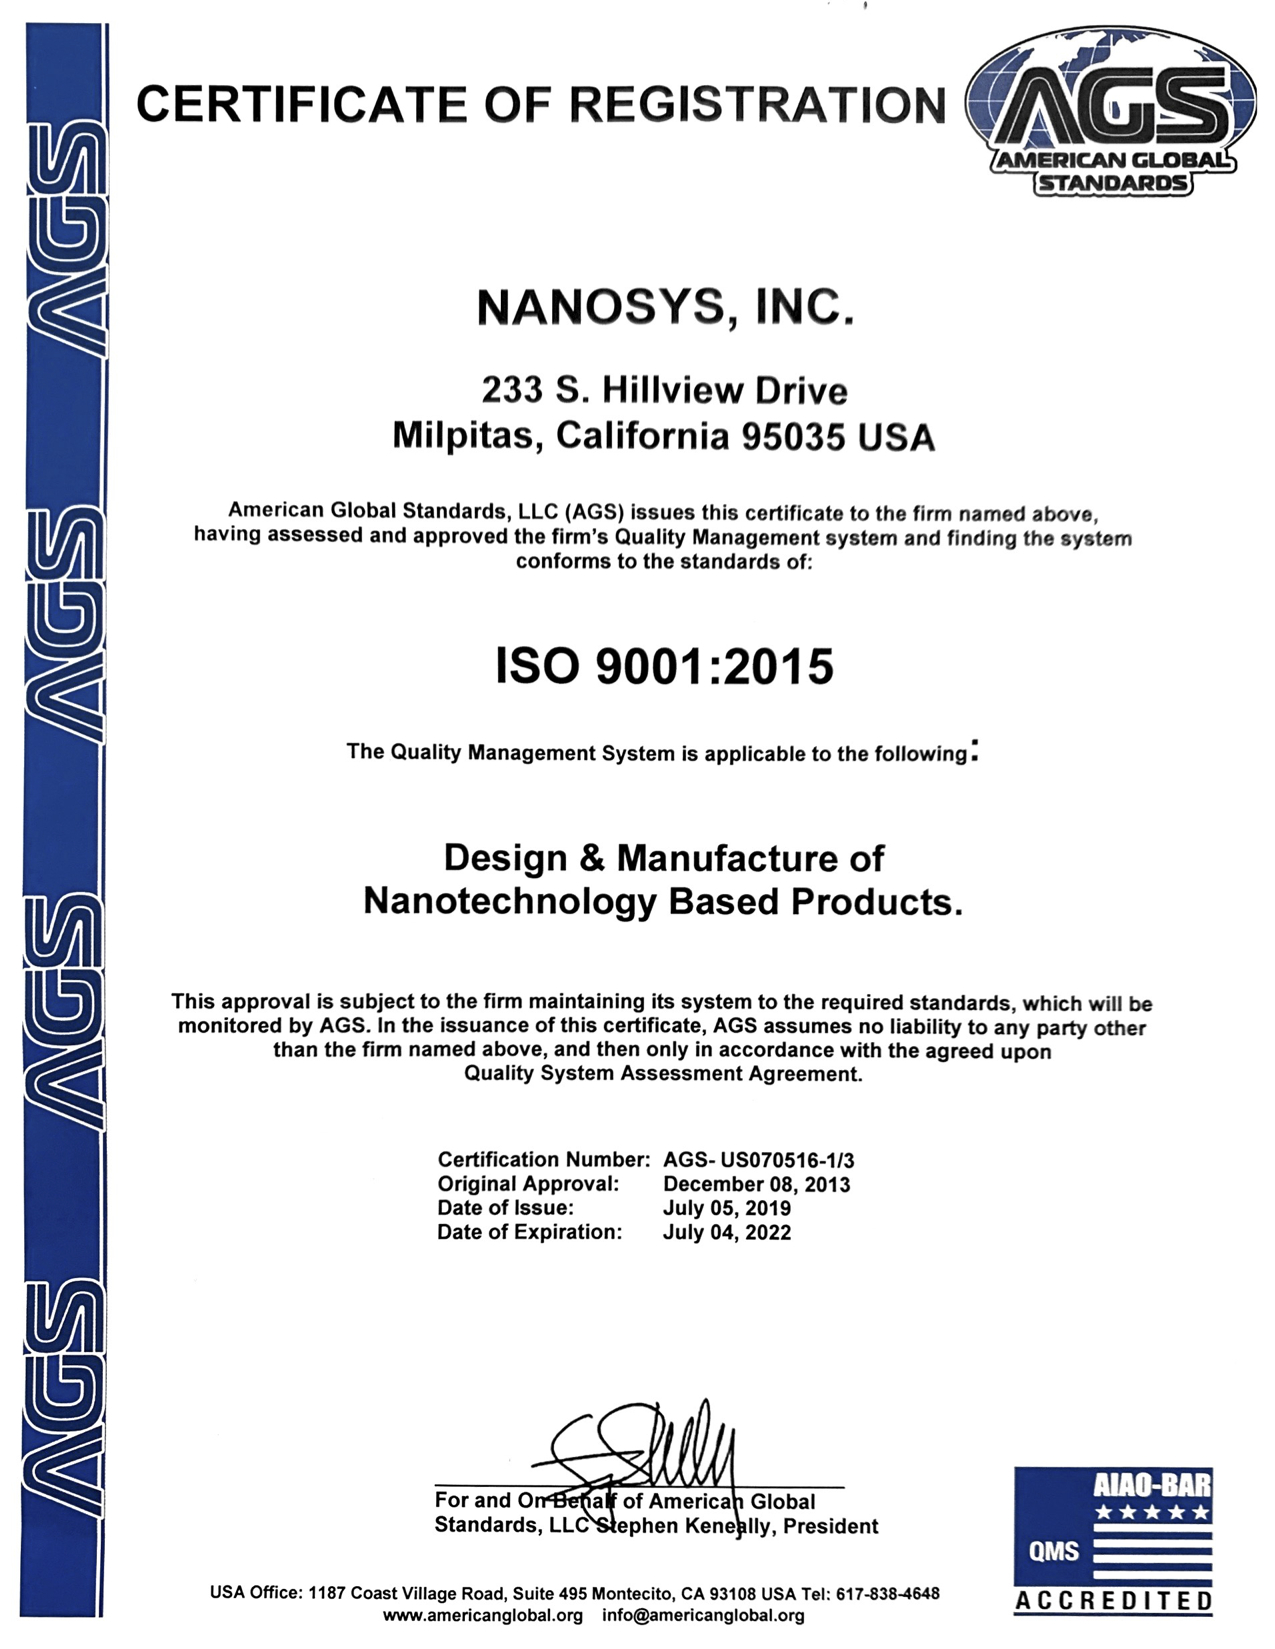 Nanosys is an ISO 9001:2015 Certified manufacturer for design and manufacture of nanotechnology based products.